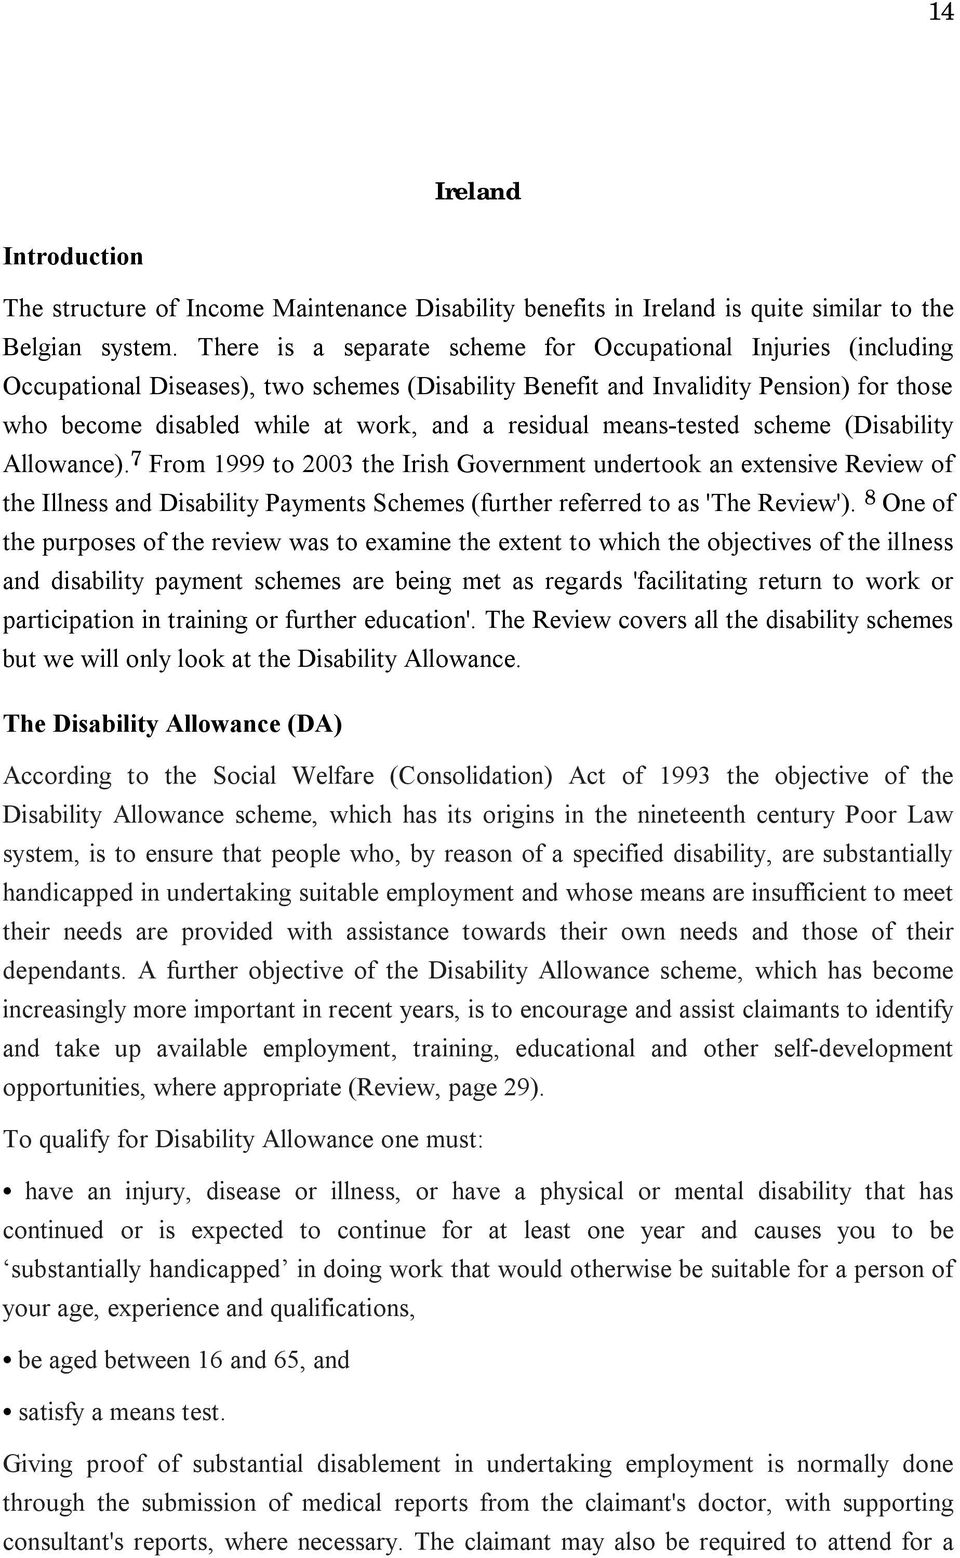 residual means-tested scheme (Disability Allowance).